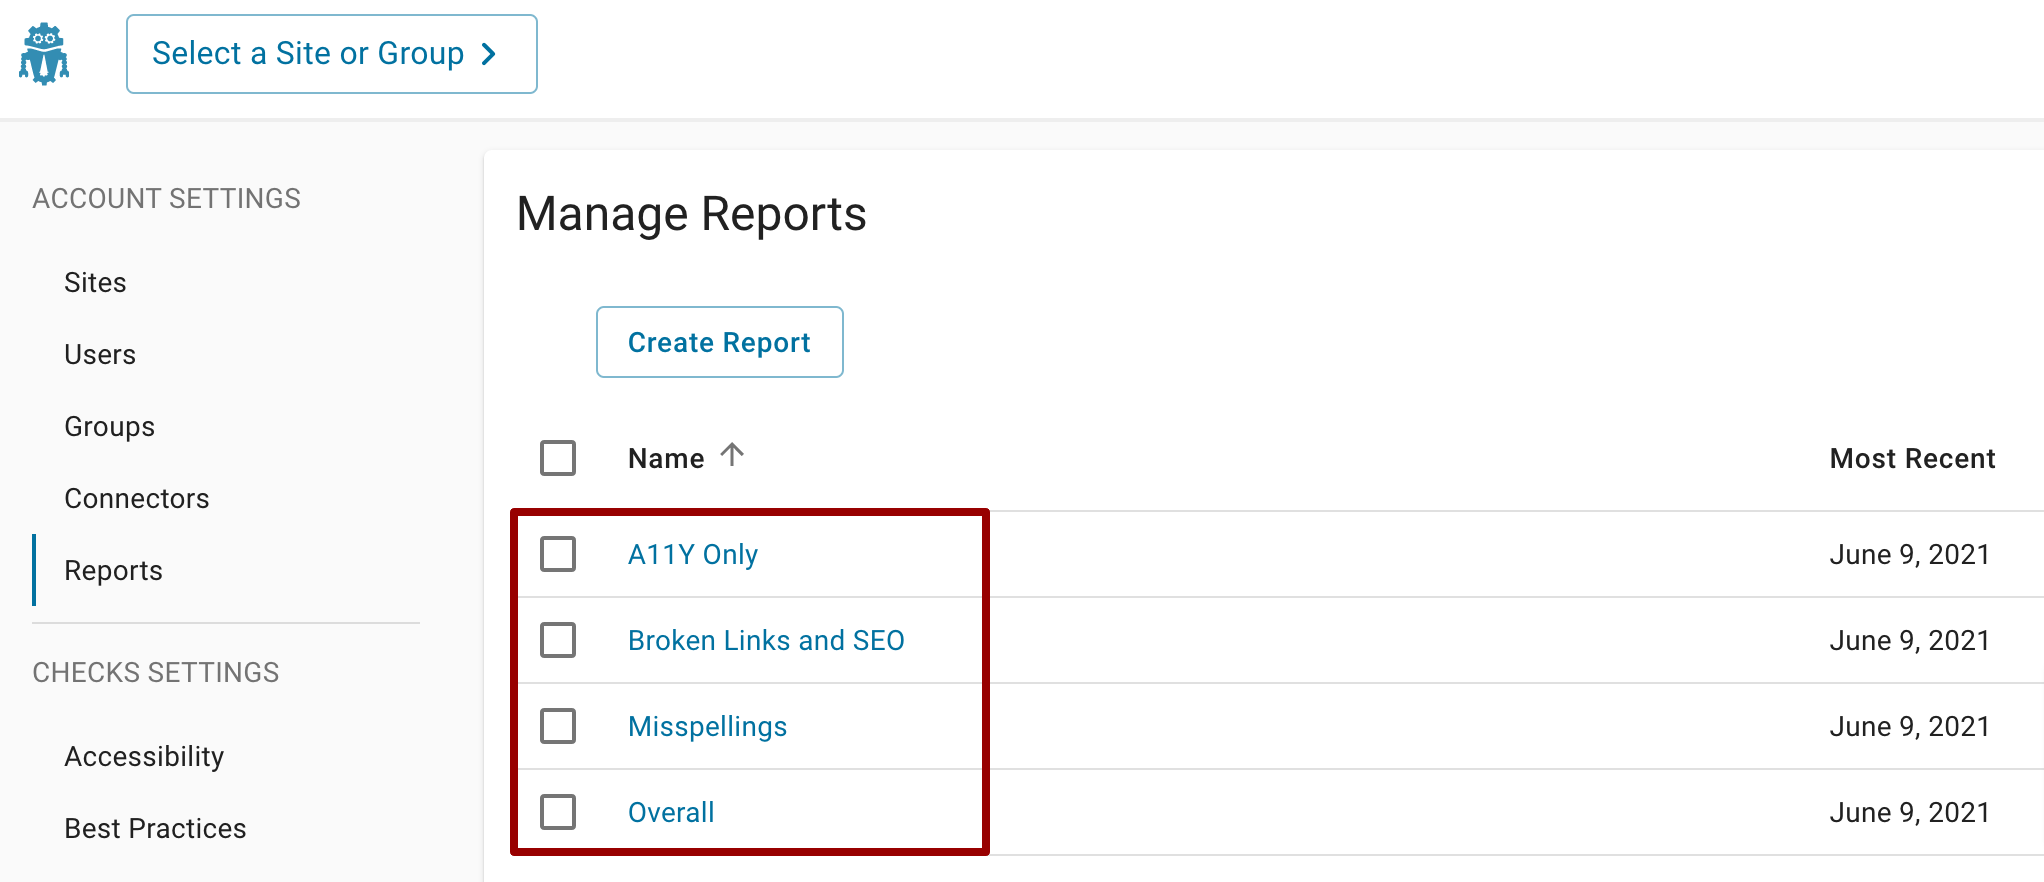 On the Manage Reports page, a red box is around all the report titles which are all hyperlinks.